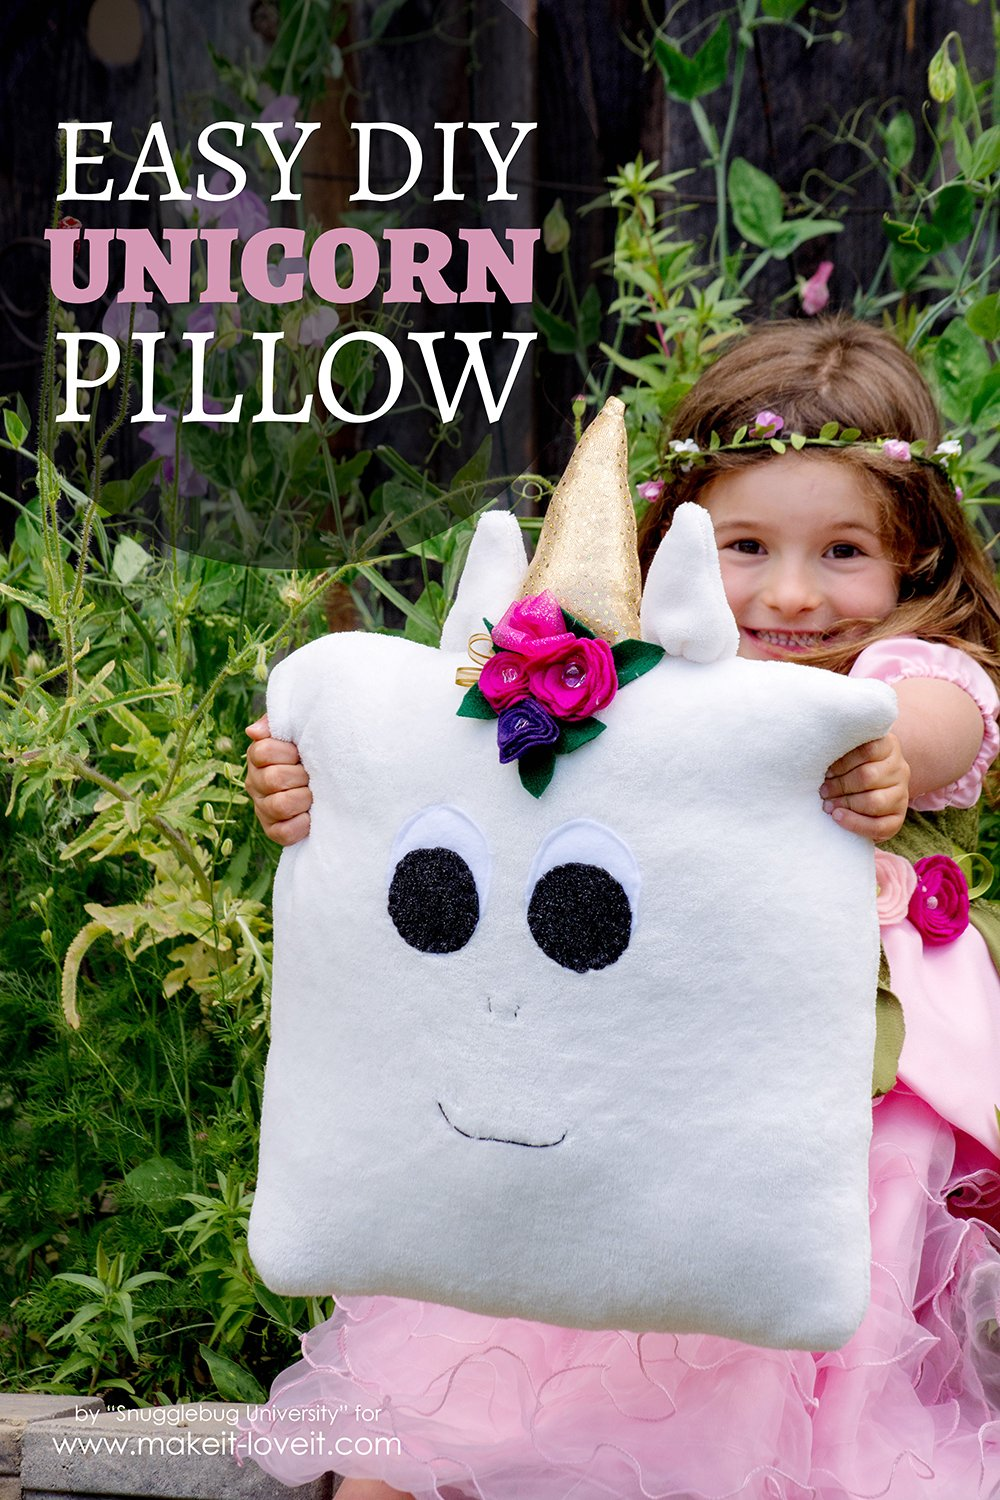 Easy diy unicorn pillow 1